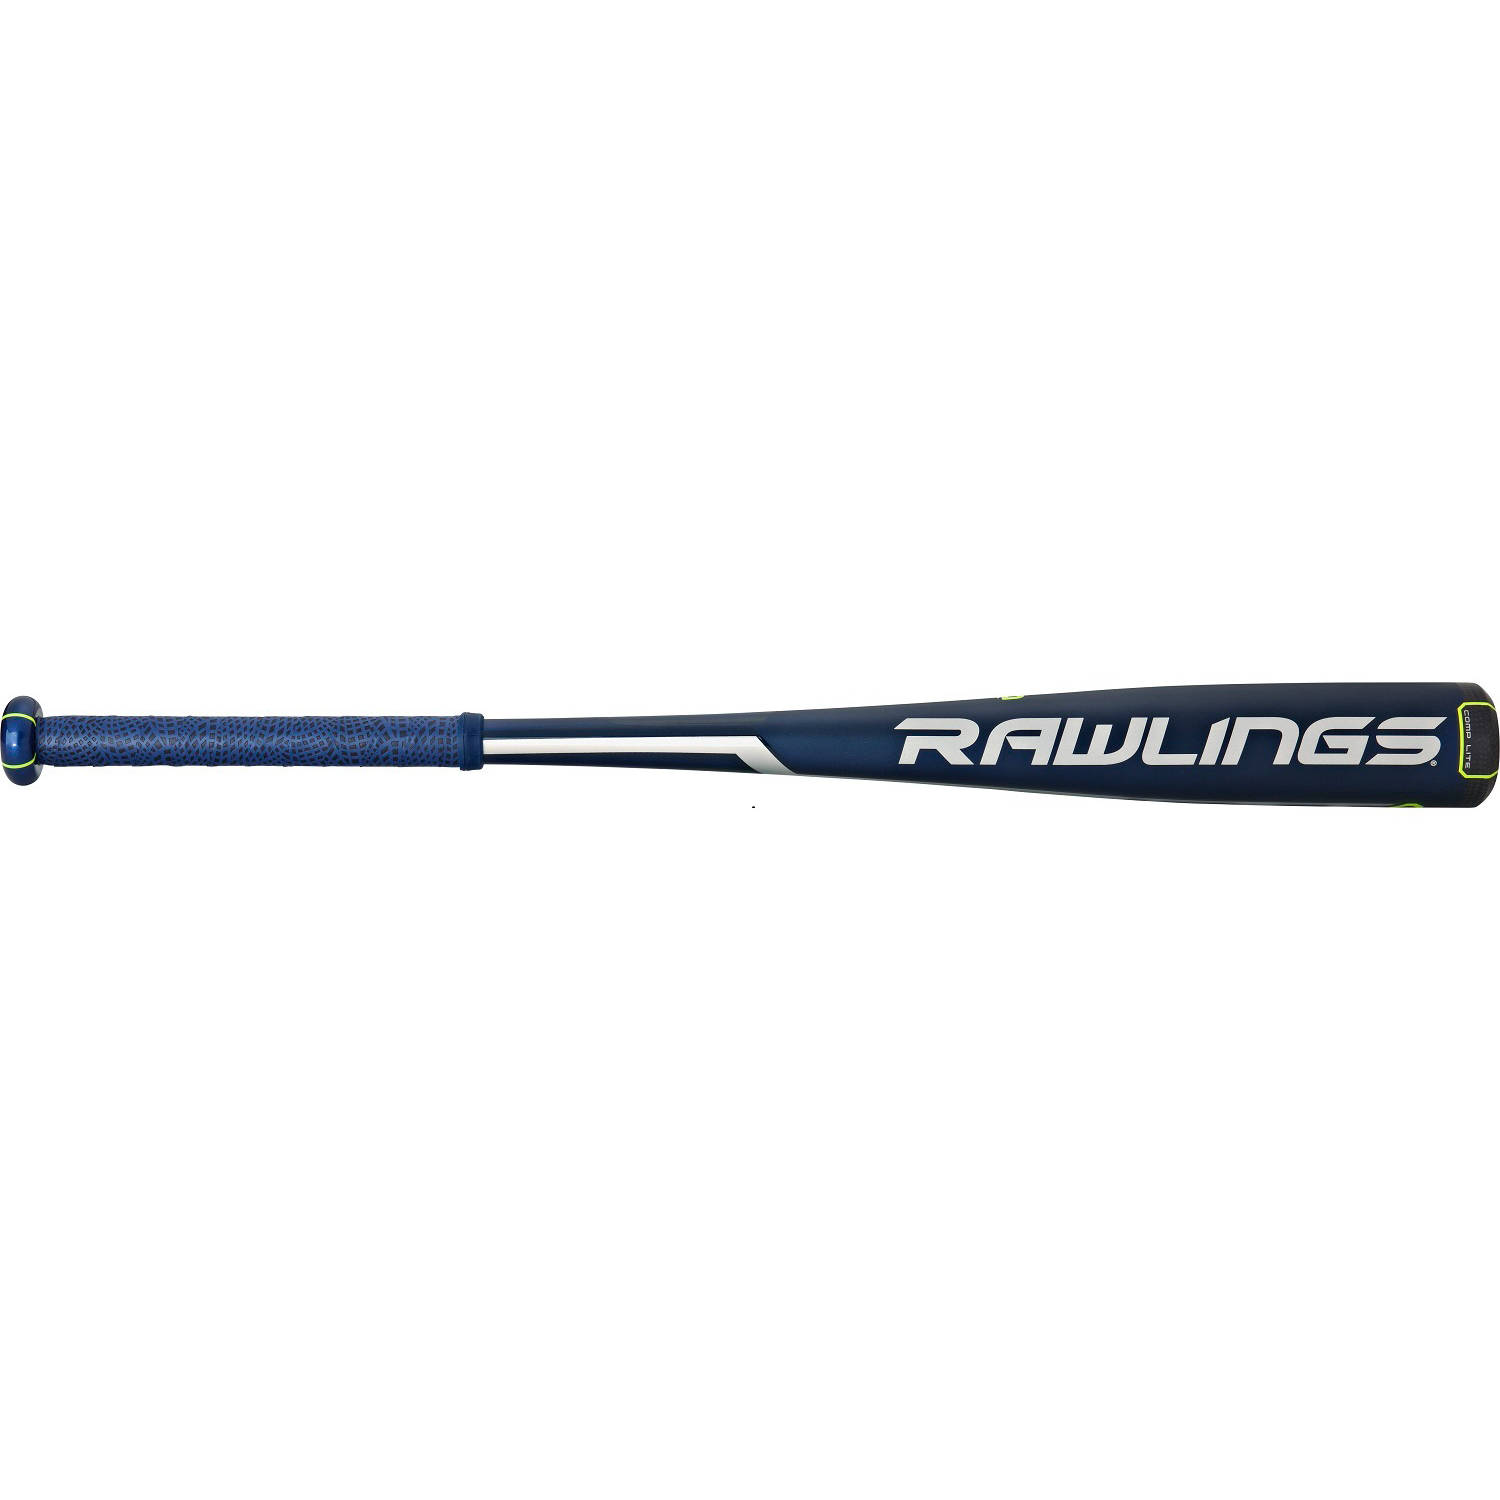 "Rawlings Senior League Velo Alloy -10 / -5 Bat (-10) NAVY/MULTI-COLORED 29"" / 19OZ. (-10)"